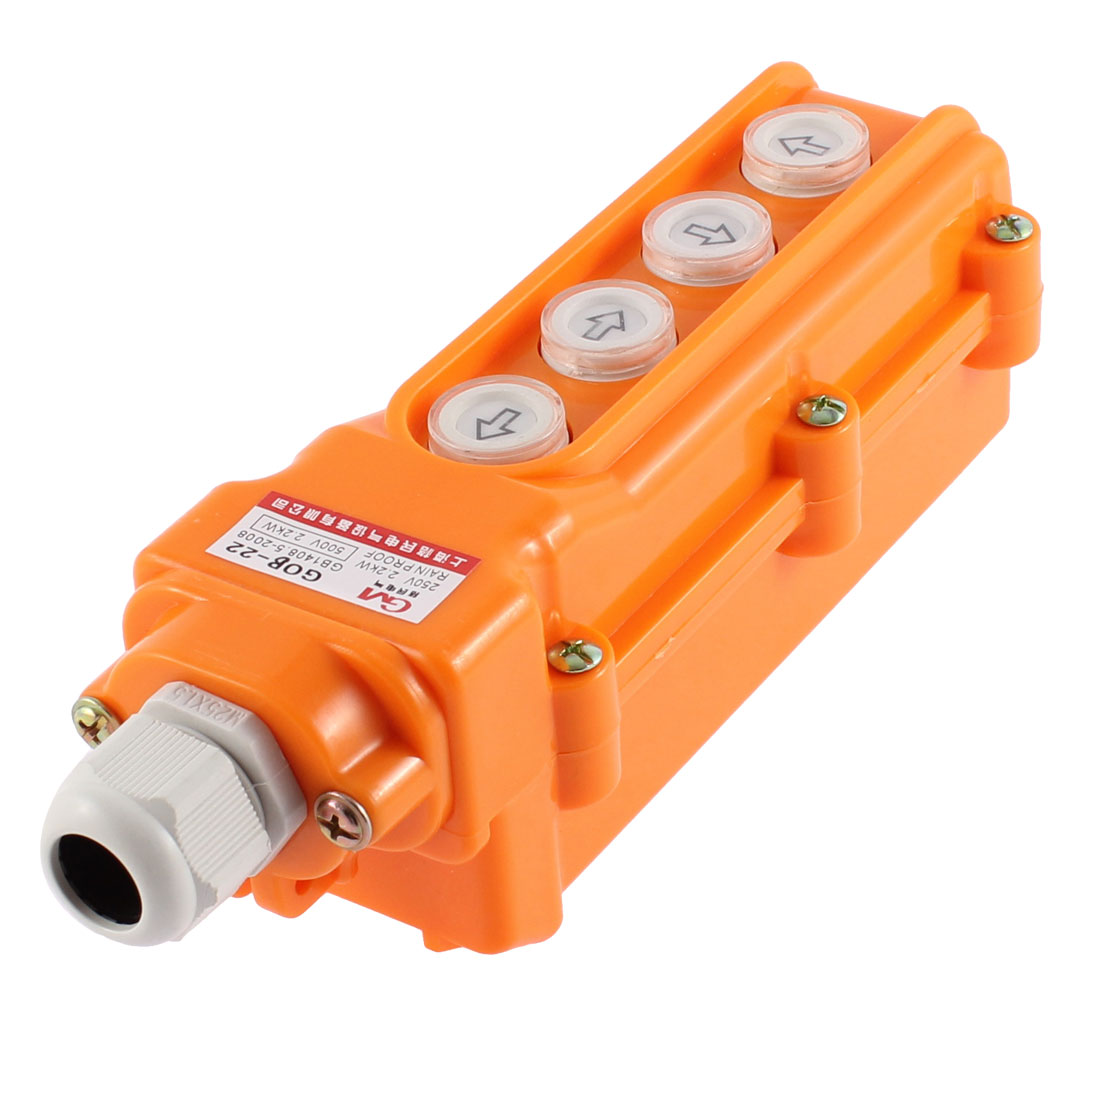 Rainproof Hoist Crane Pushbutton Switch Up Down Left Right 4 Way Controls Control Station